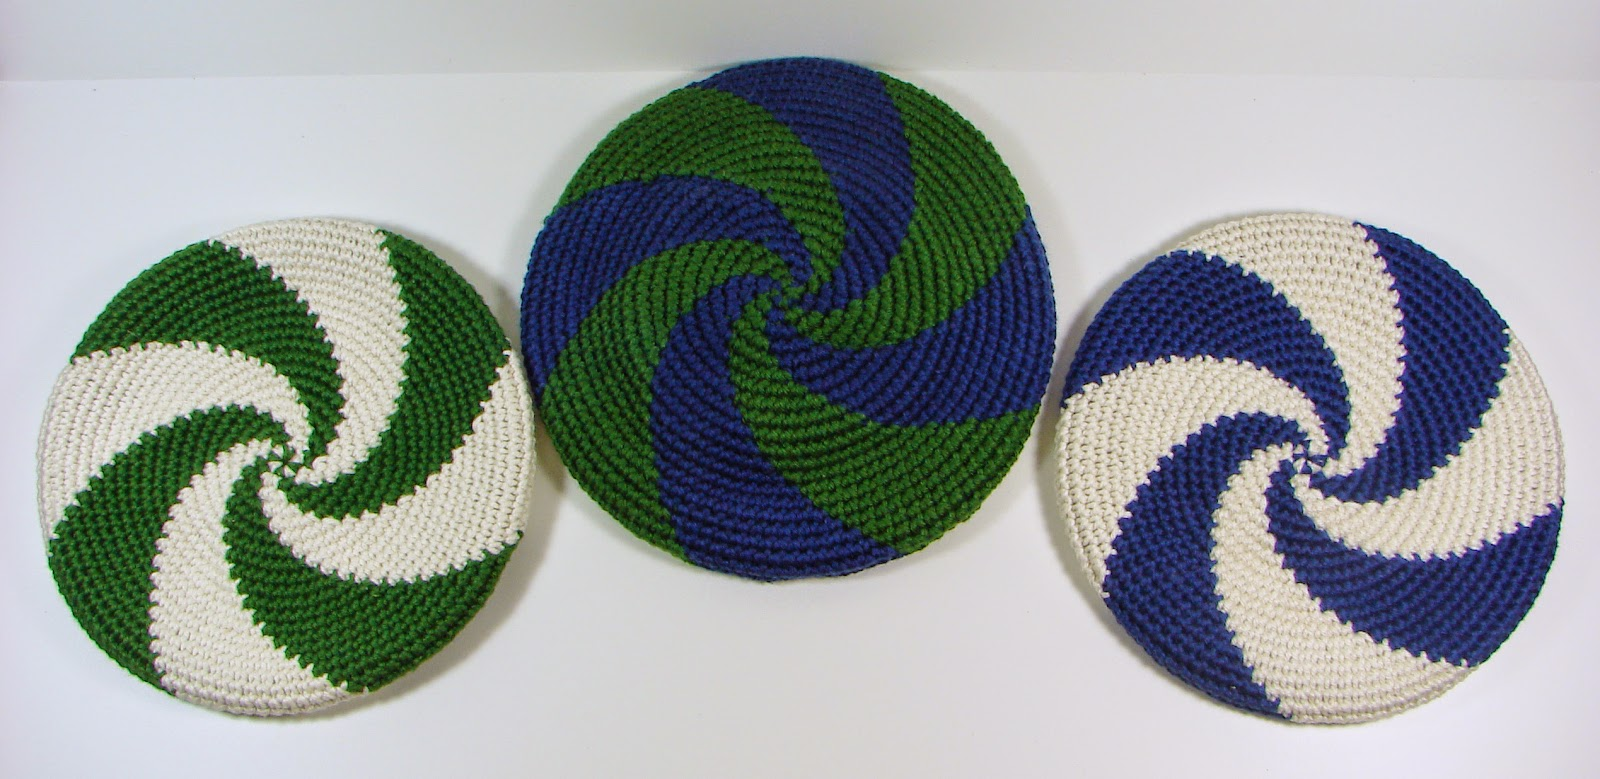 disc, frisbee, crochet, crocheted, toy, blue, white, green